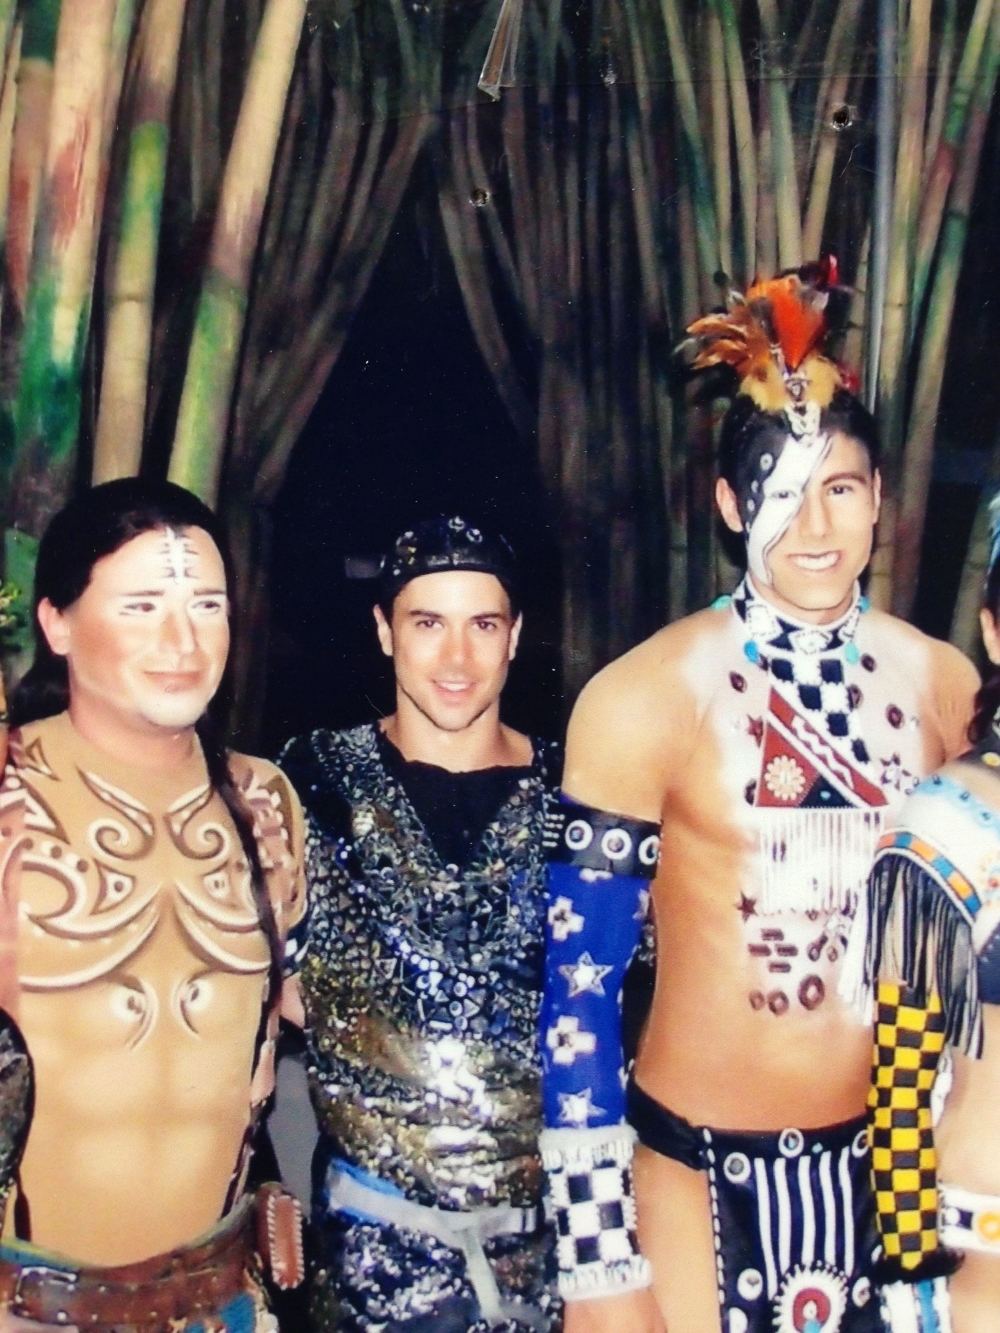 Joe Putignano as the Crystal Man with some of the cast of Cirque du Soleil's Totem